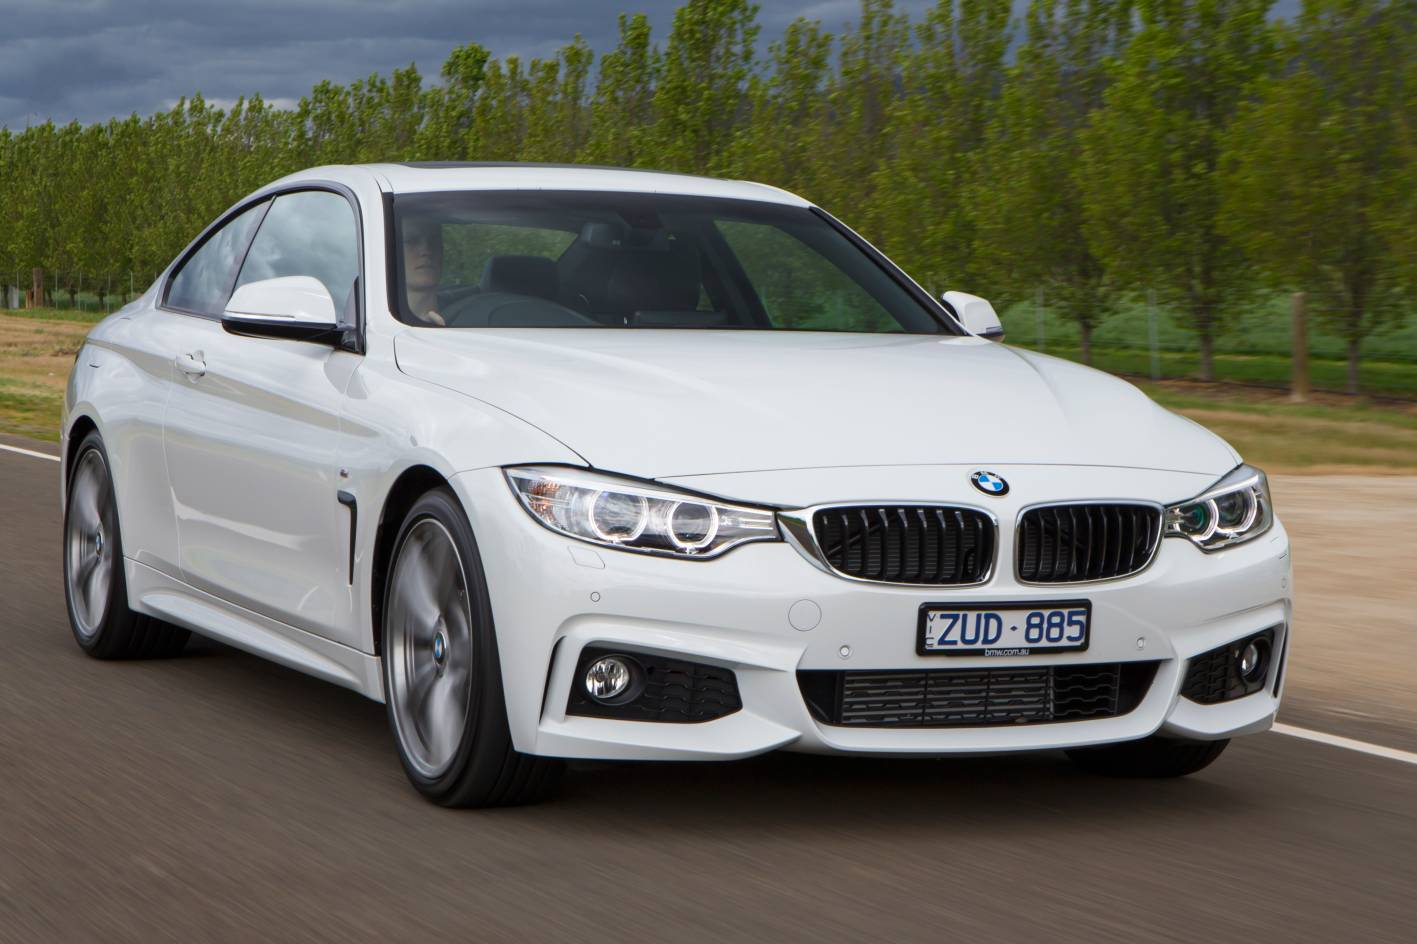 BMW Cars - News: 4 Series pricing & specifications